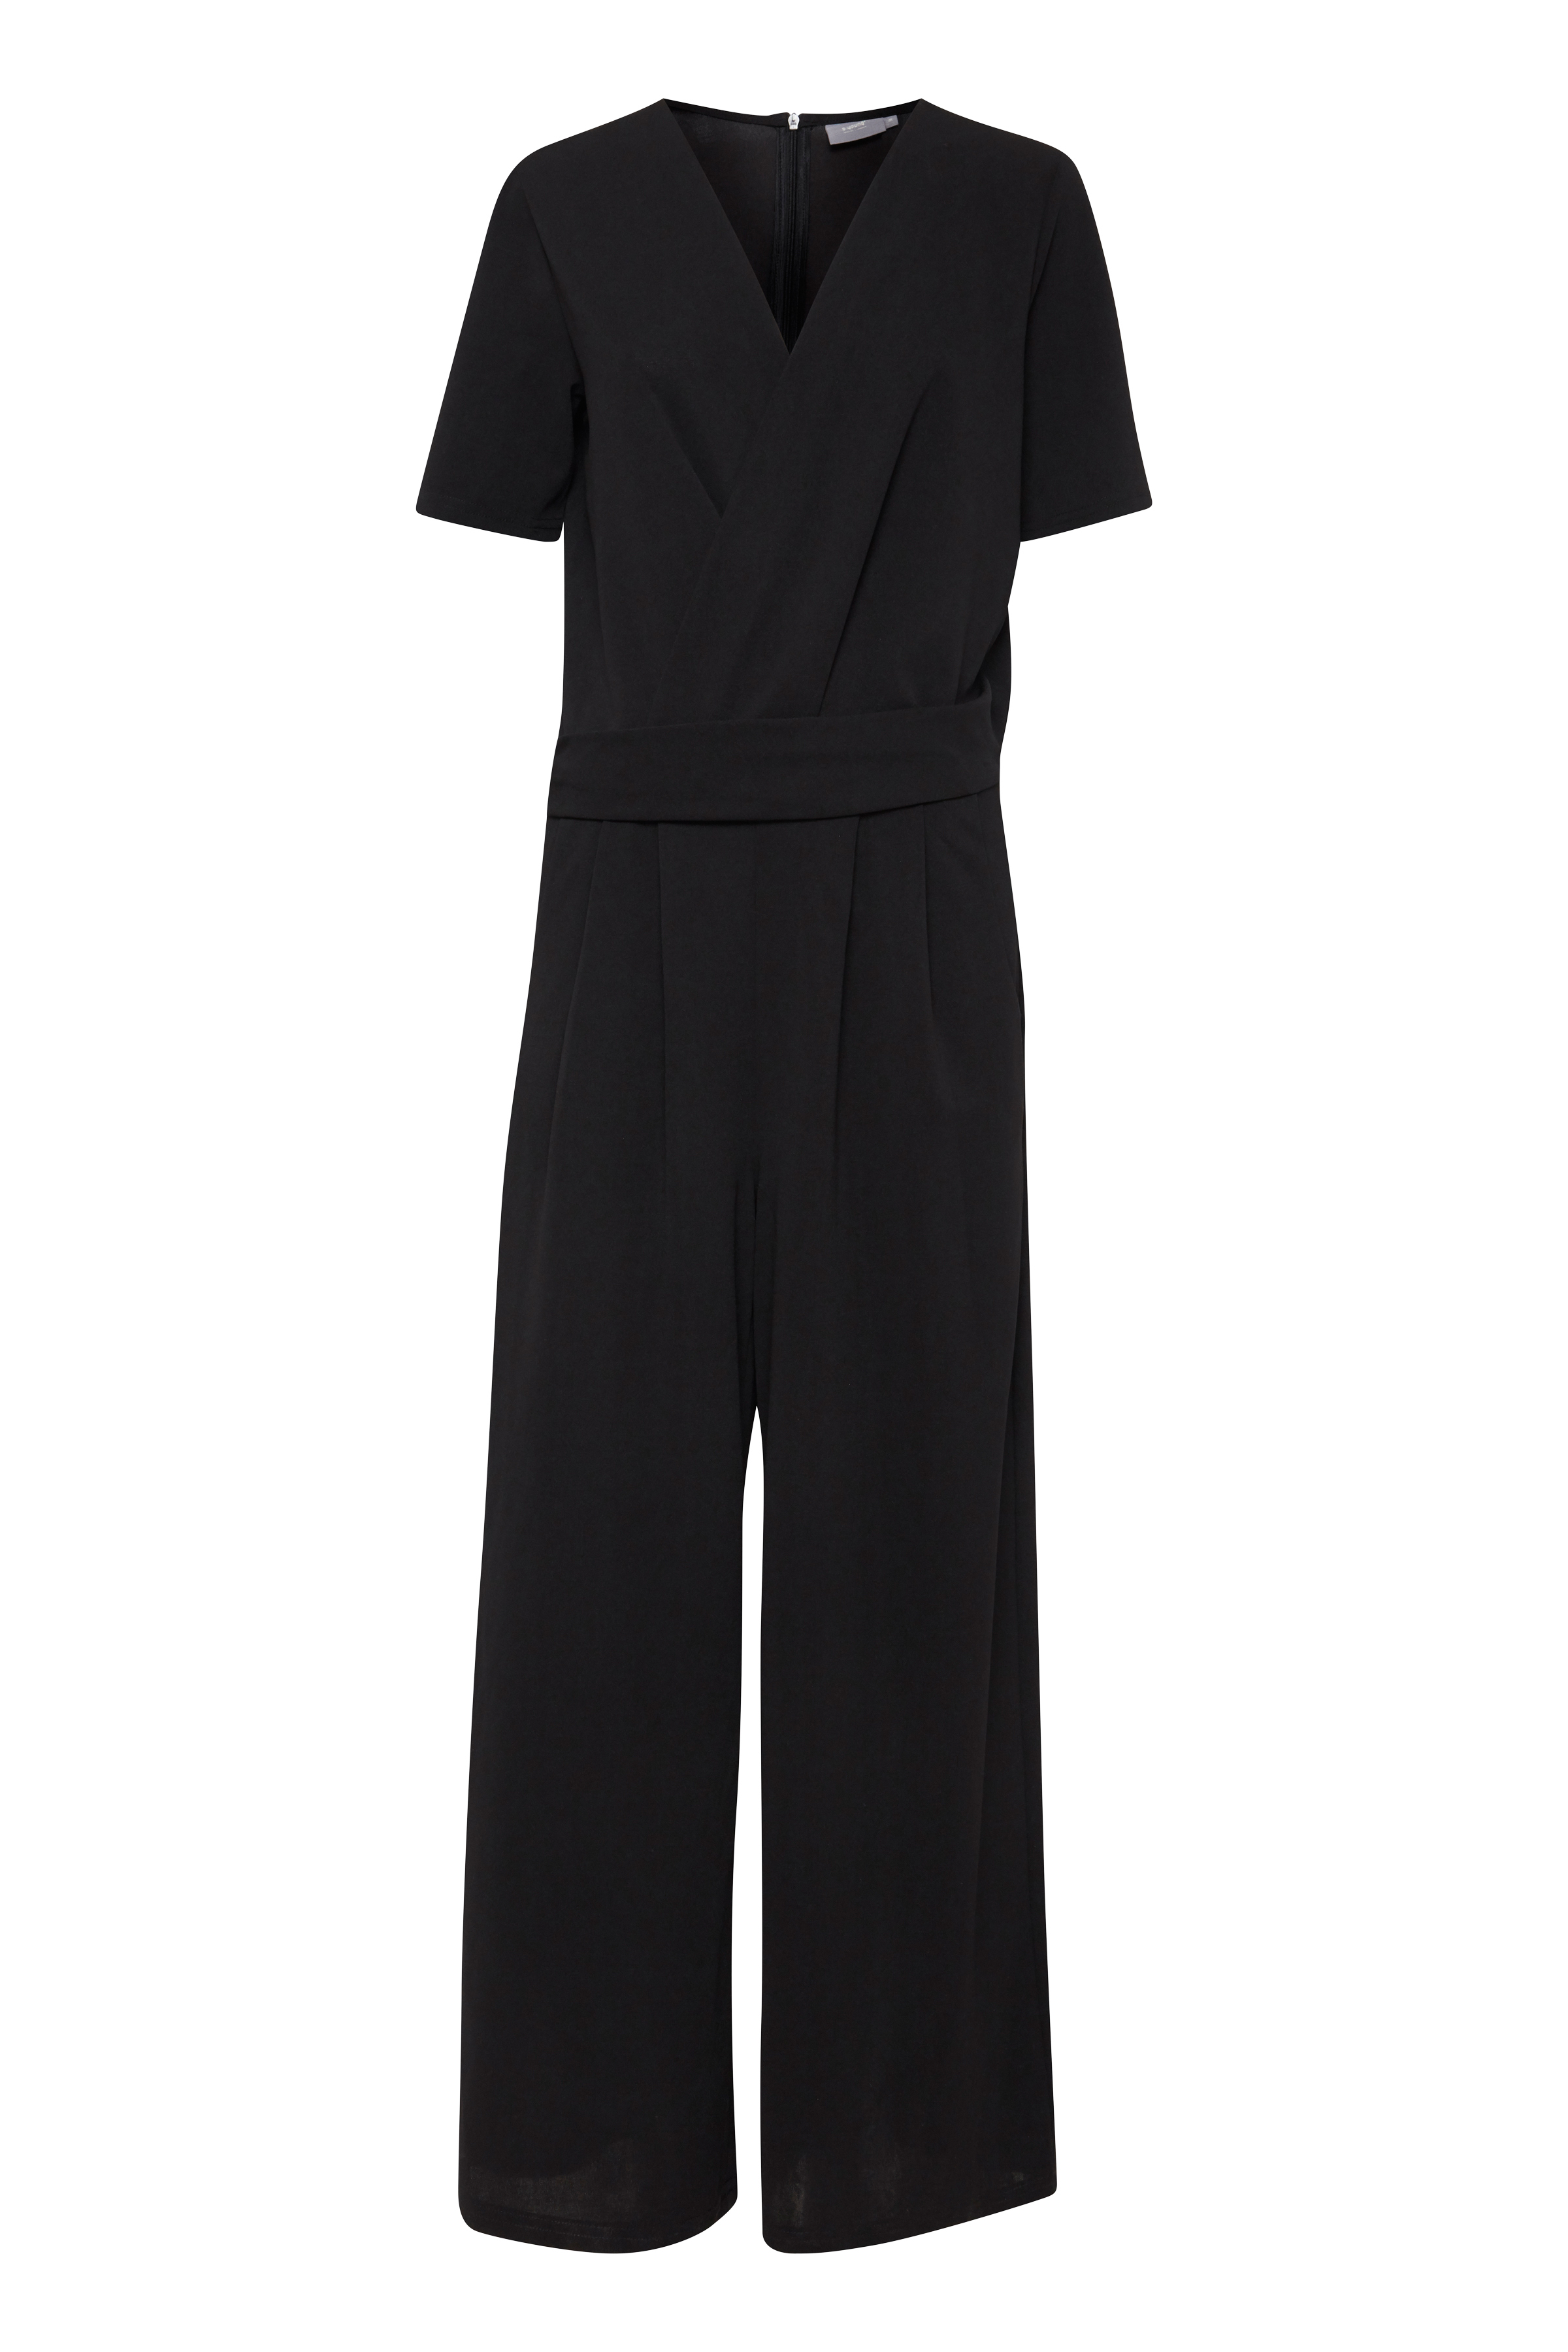 Black Jumpsuit from b.young – Buy Black Jumpsuit from size S-XXL here